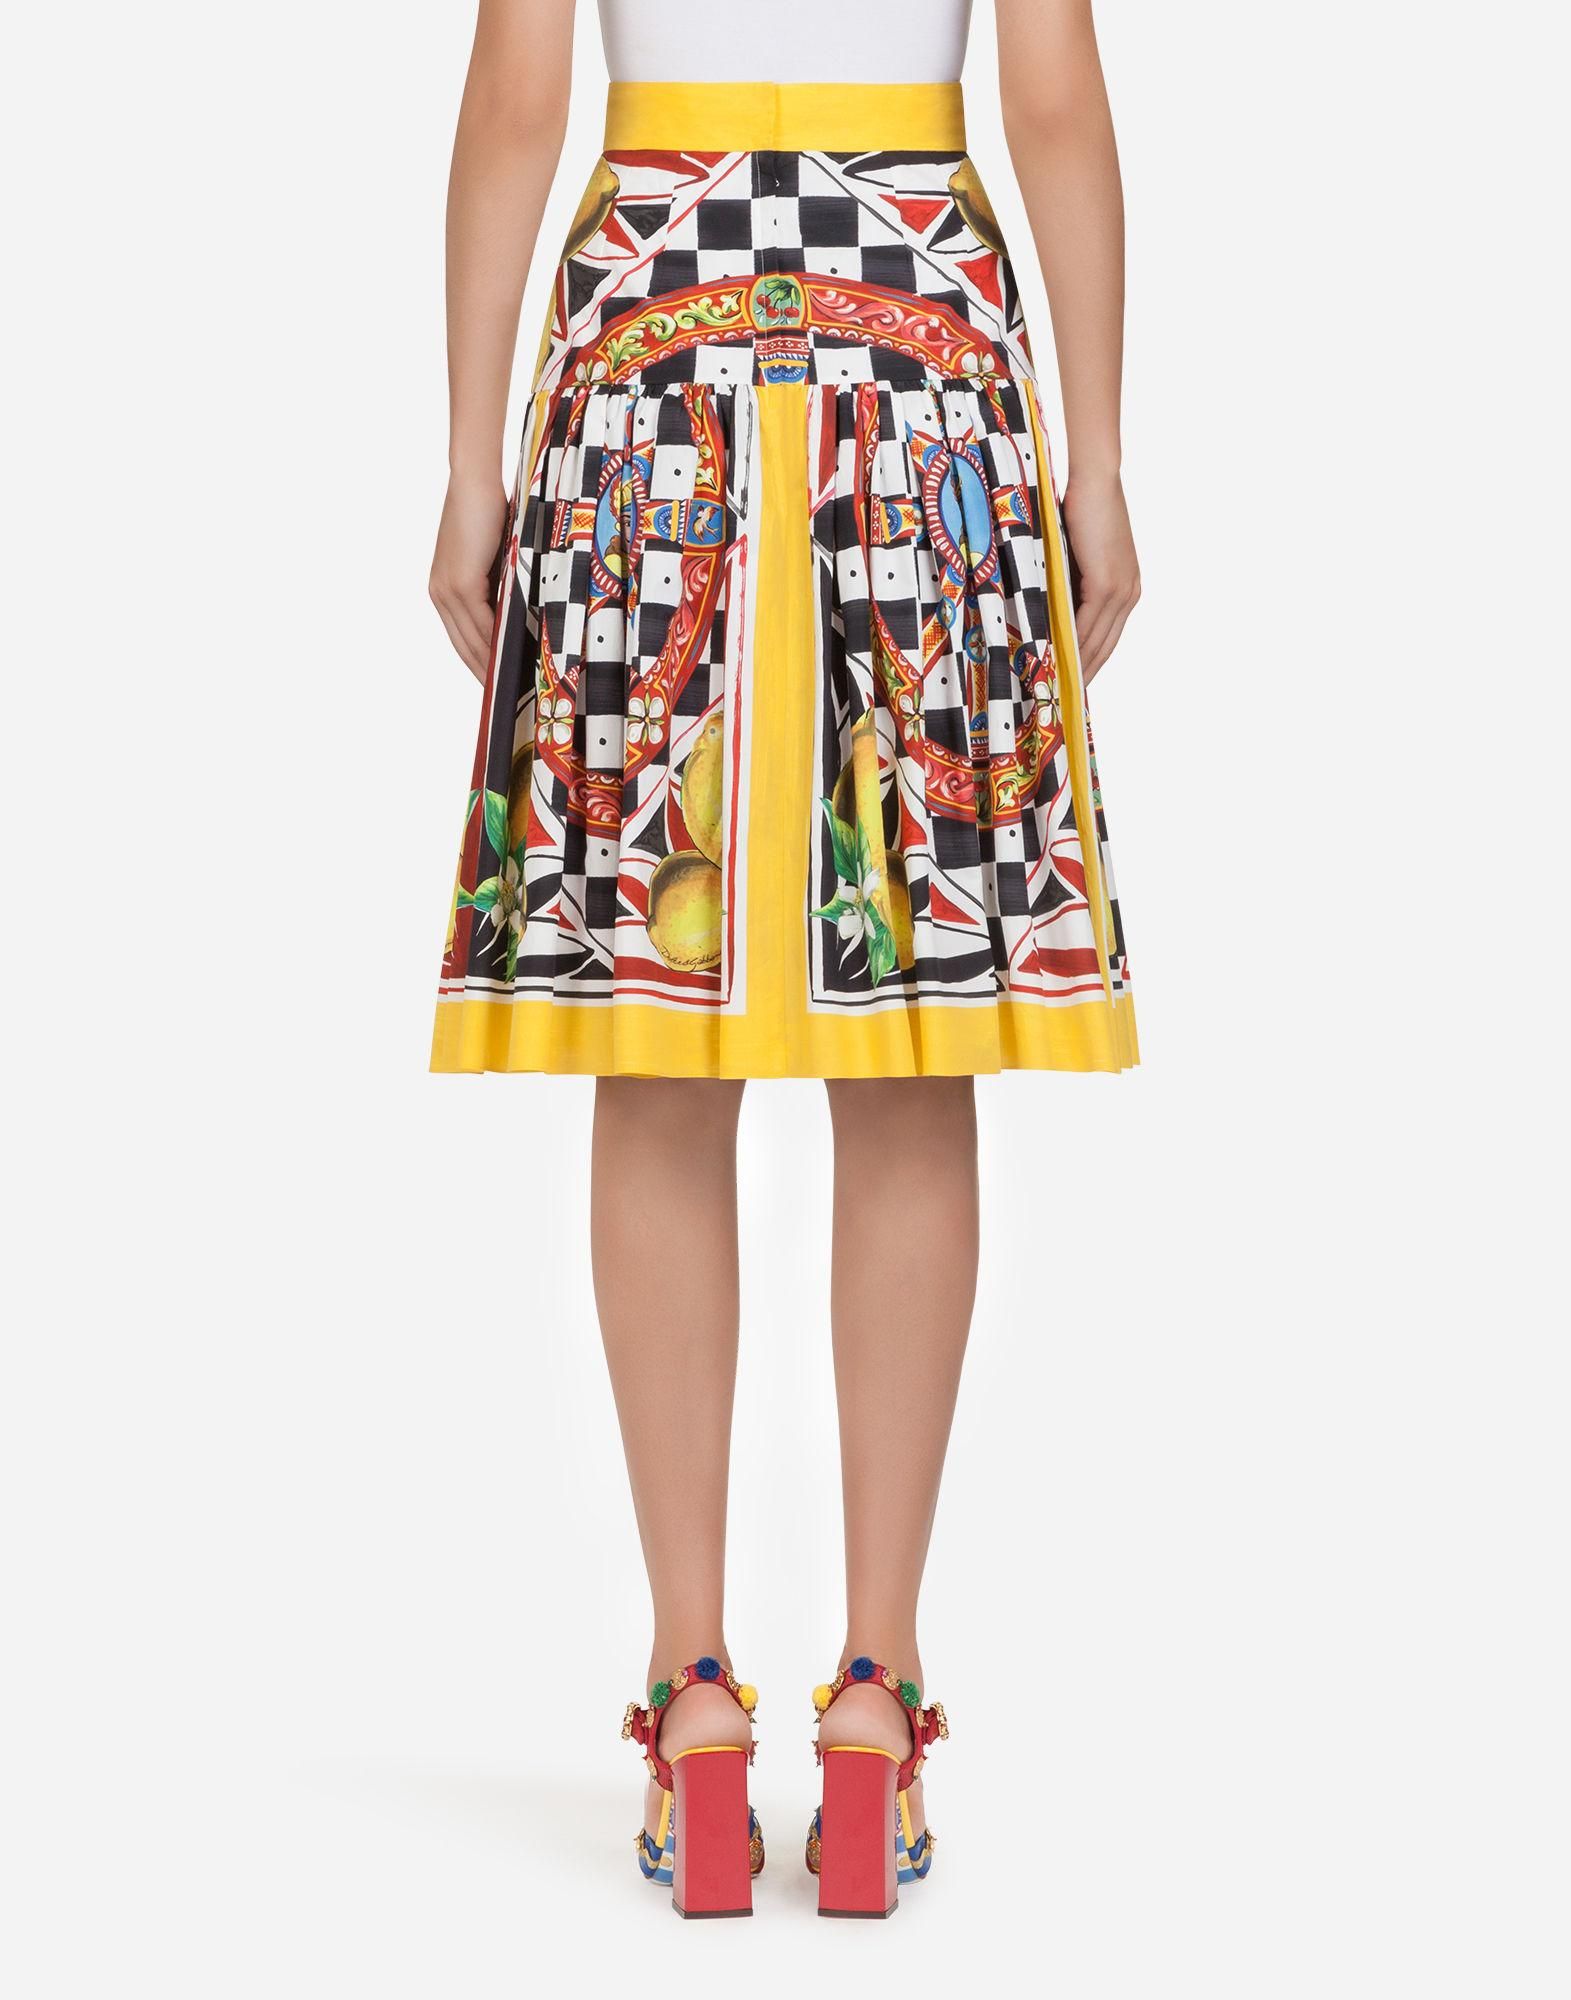 377730b8ee9b Lyst - Dolce   Gabbana Sicilian Carretto And Lemon Print Cotton Skirt